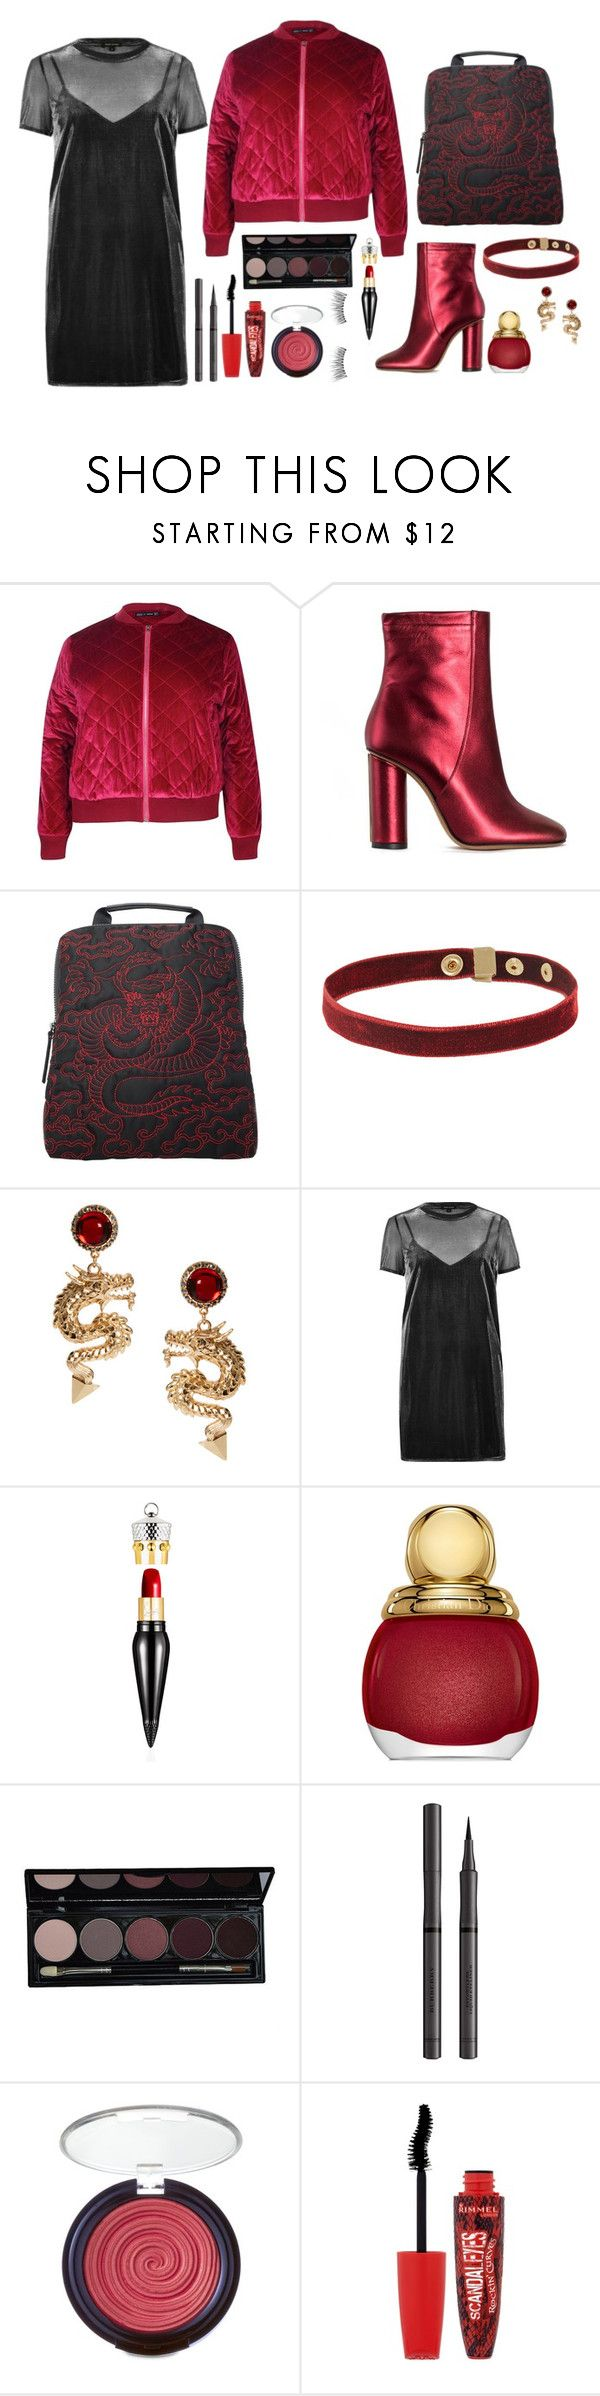 """""""But inside there was hate"""" by angel17-angel17 ❤ liked on Polyvore featuring Boohoo, Jill Stuart, Vivienne Tam, ASOS, River Island, Christian Louboutin, Christian Dior, Burberry, Laura Geller and Rimmel"""